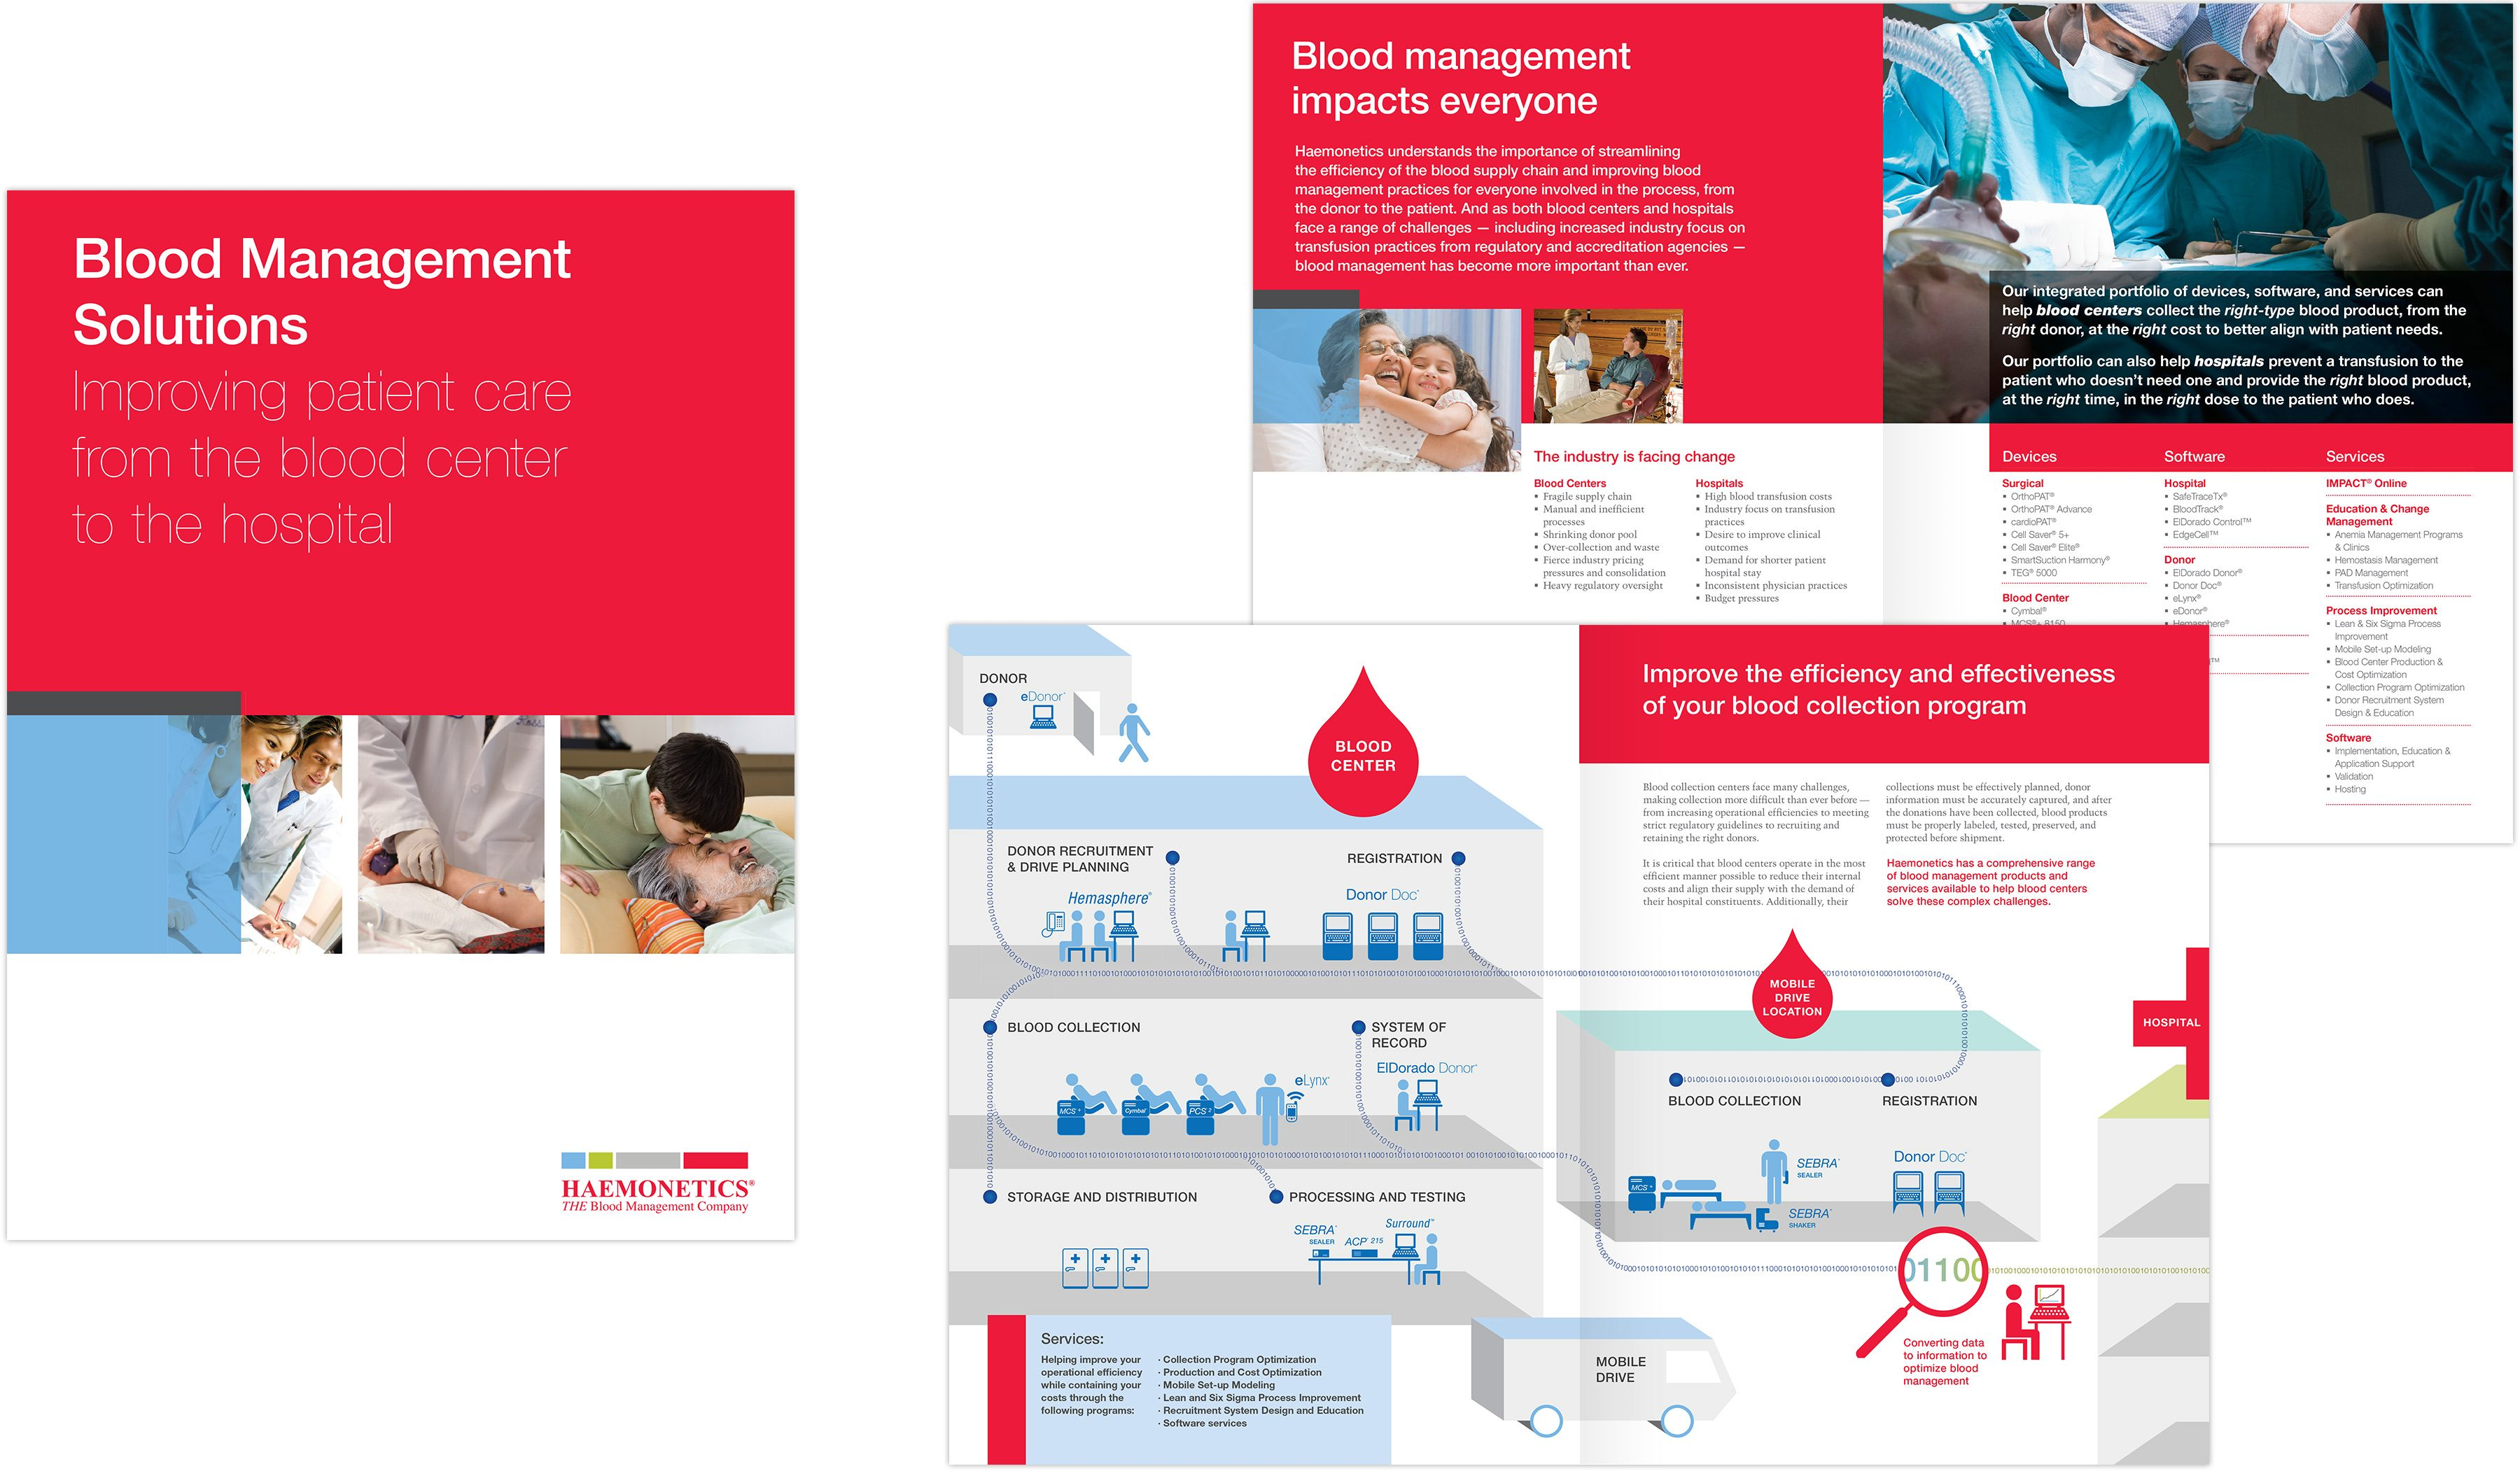 Blood Management Solutions spread